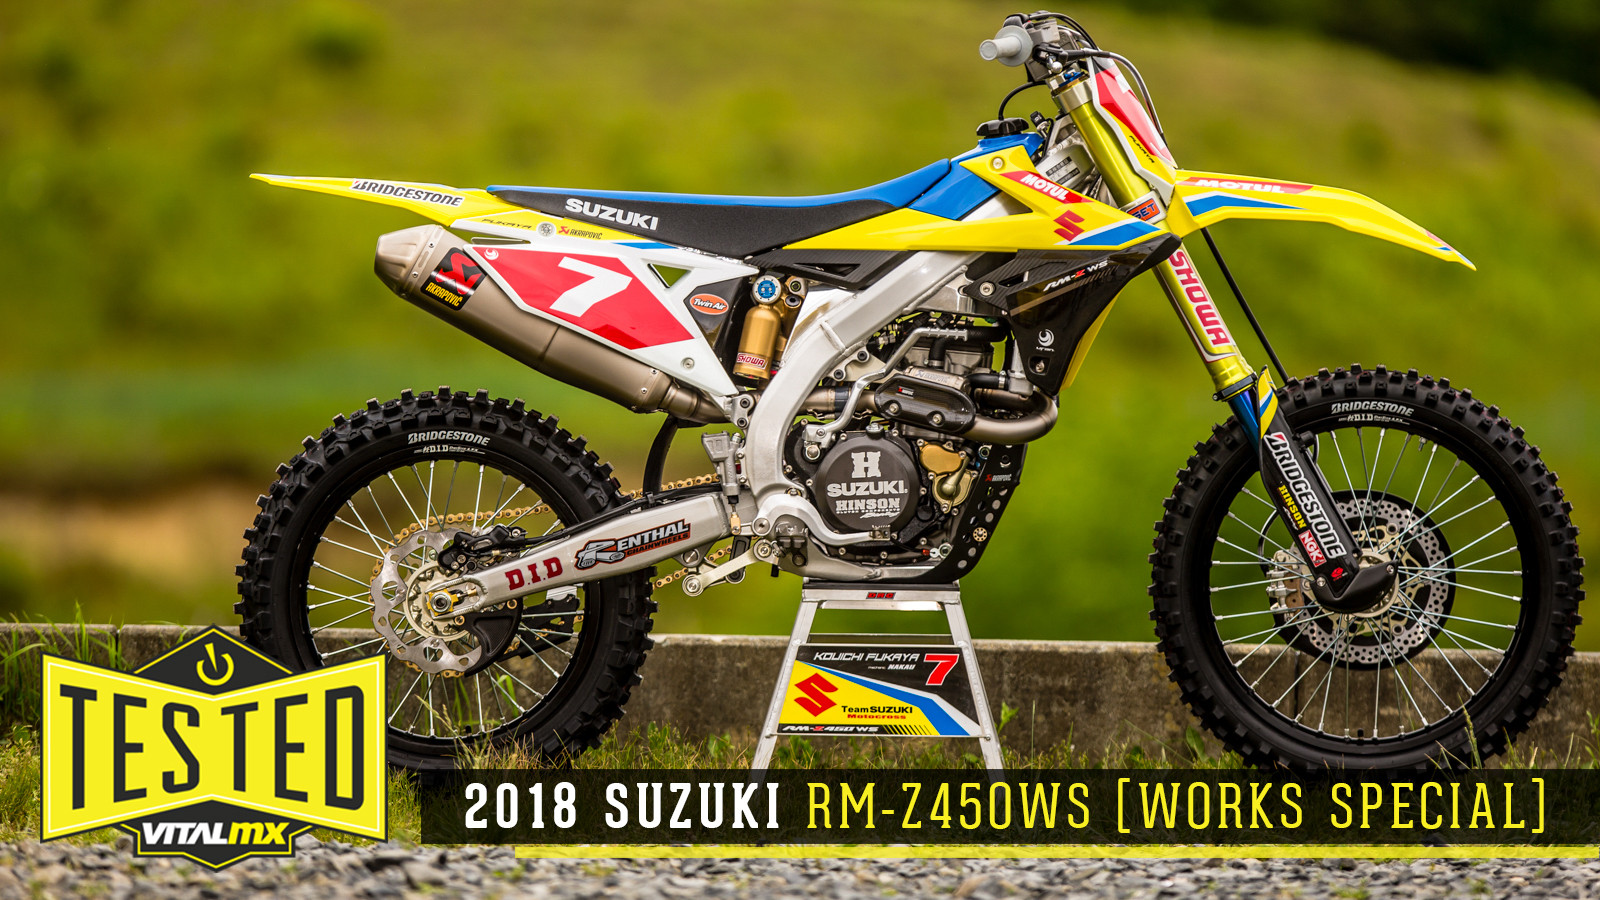 Tested: 2018 Suzuki RM-Z450WS (Works Special)